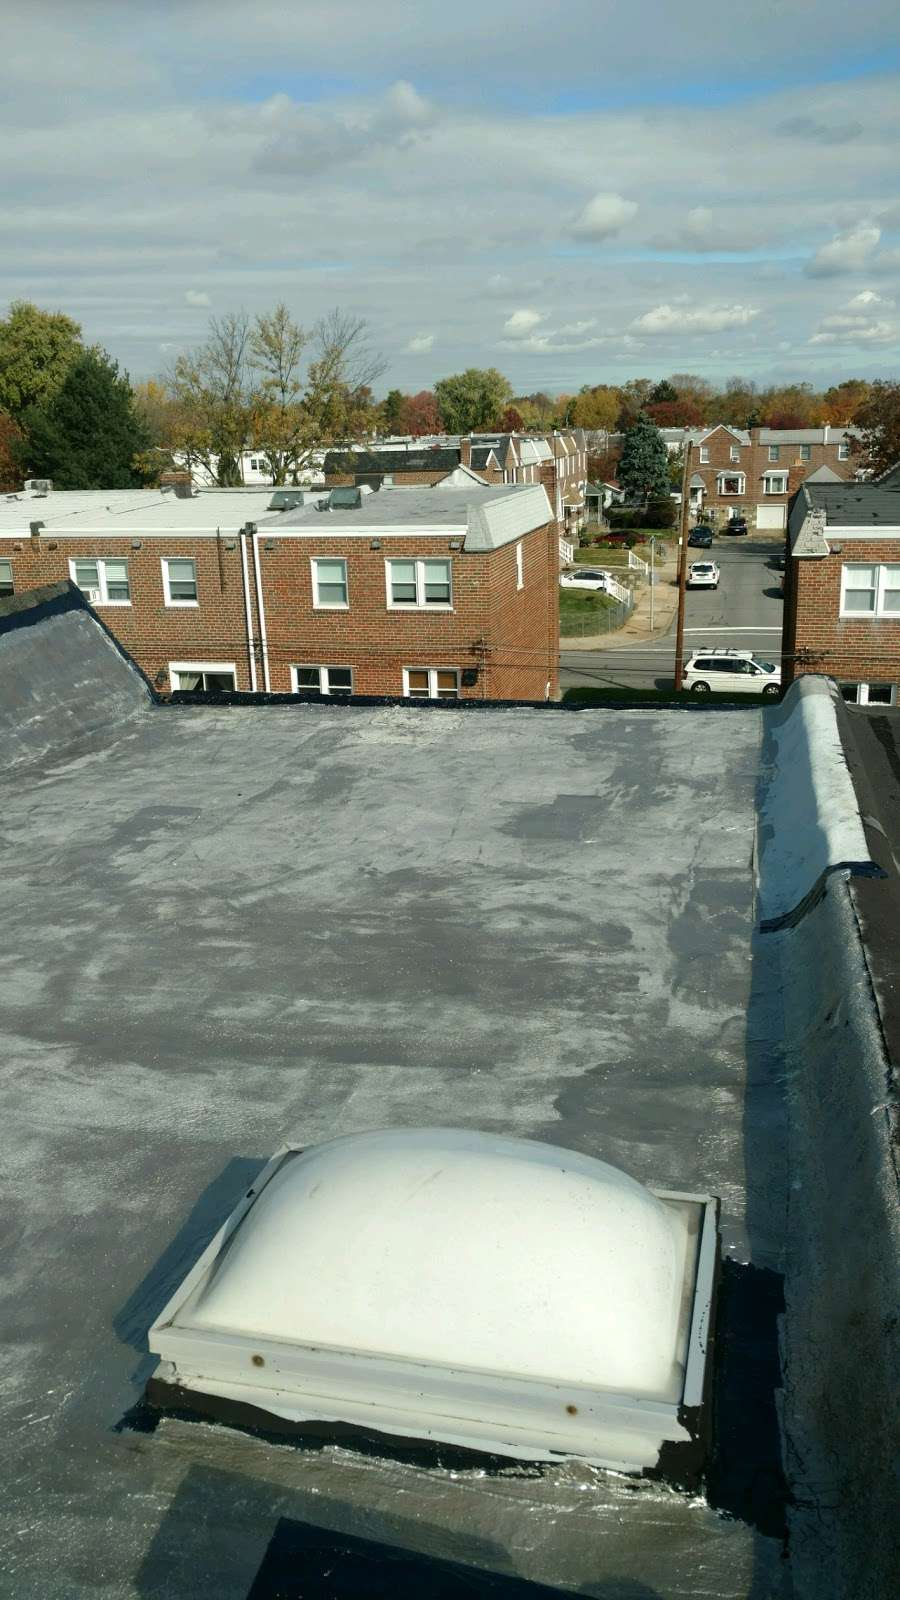 Stephenson family roofing - roofing contractor    Photo 9 of 10   Address: 4319 Greenmount Rd, Philadelphia, PA 19154, USA   Phone: (267) 414-3343